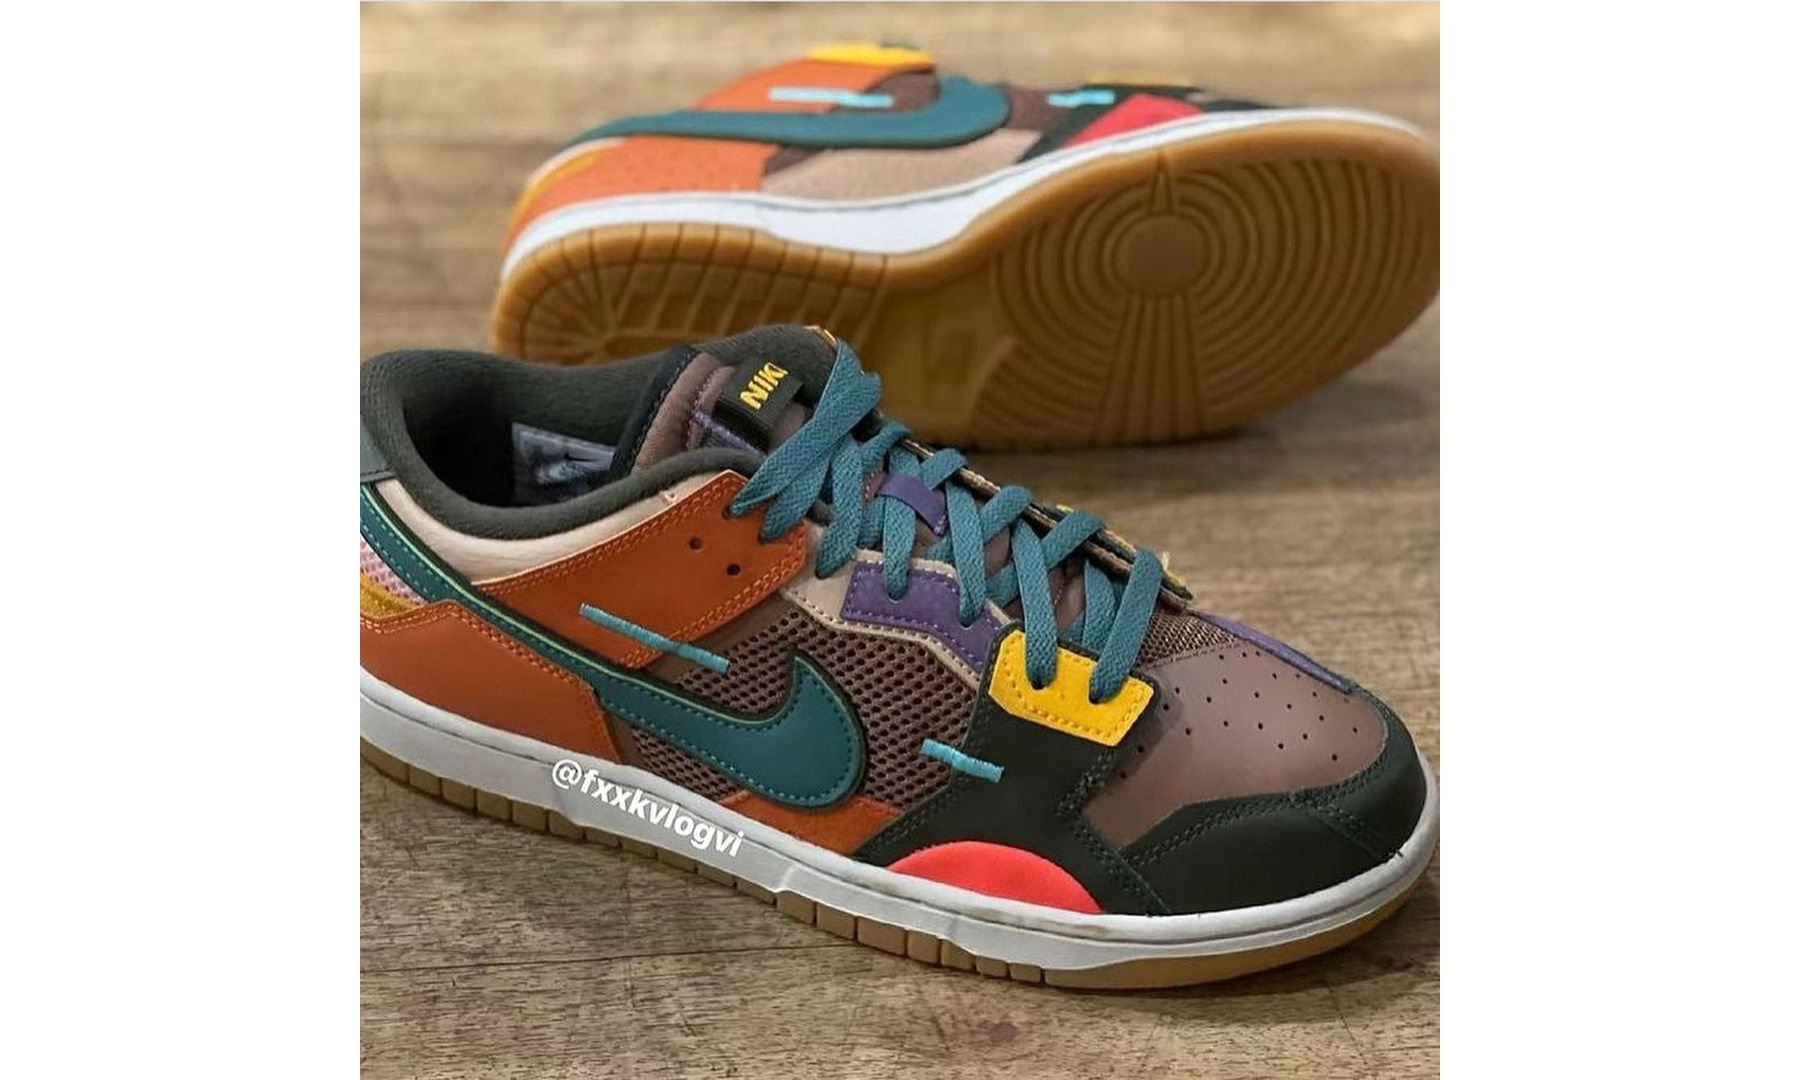 Nike Dunk Low「Archeo Brown」首度公开